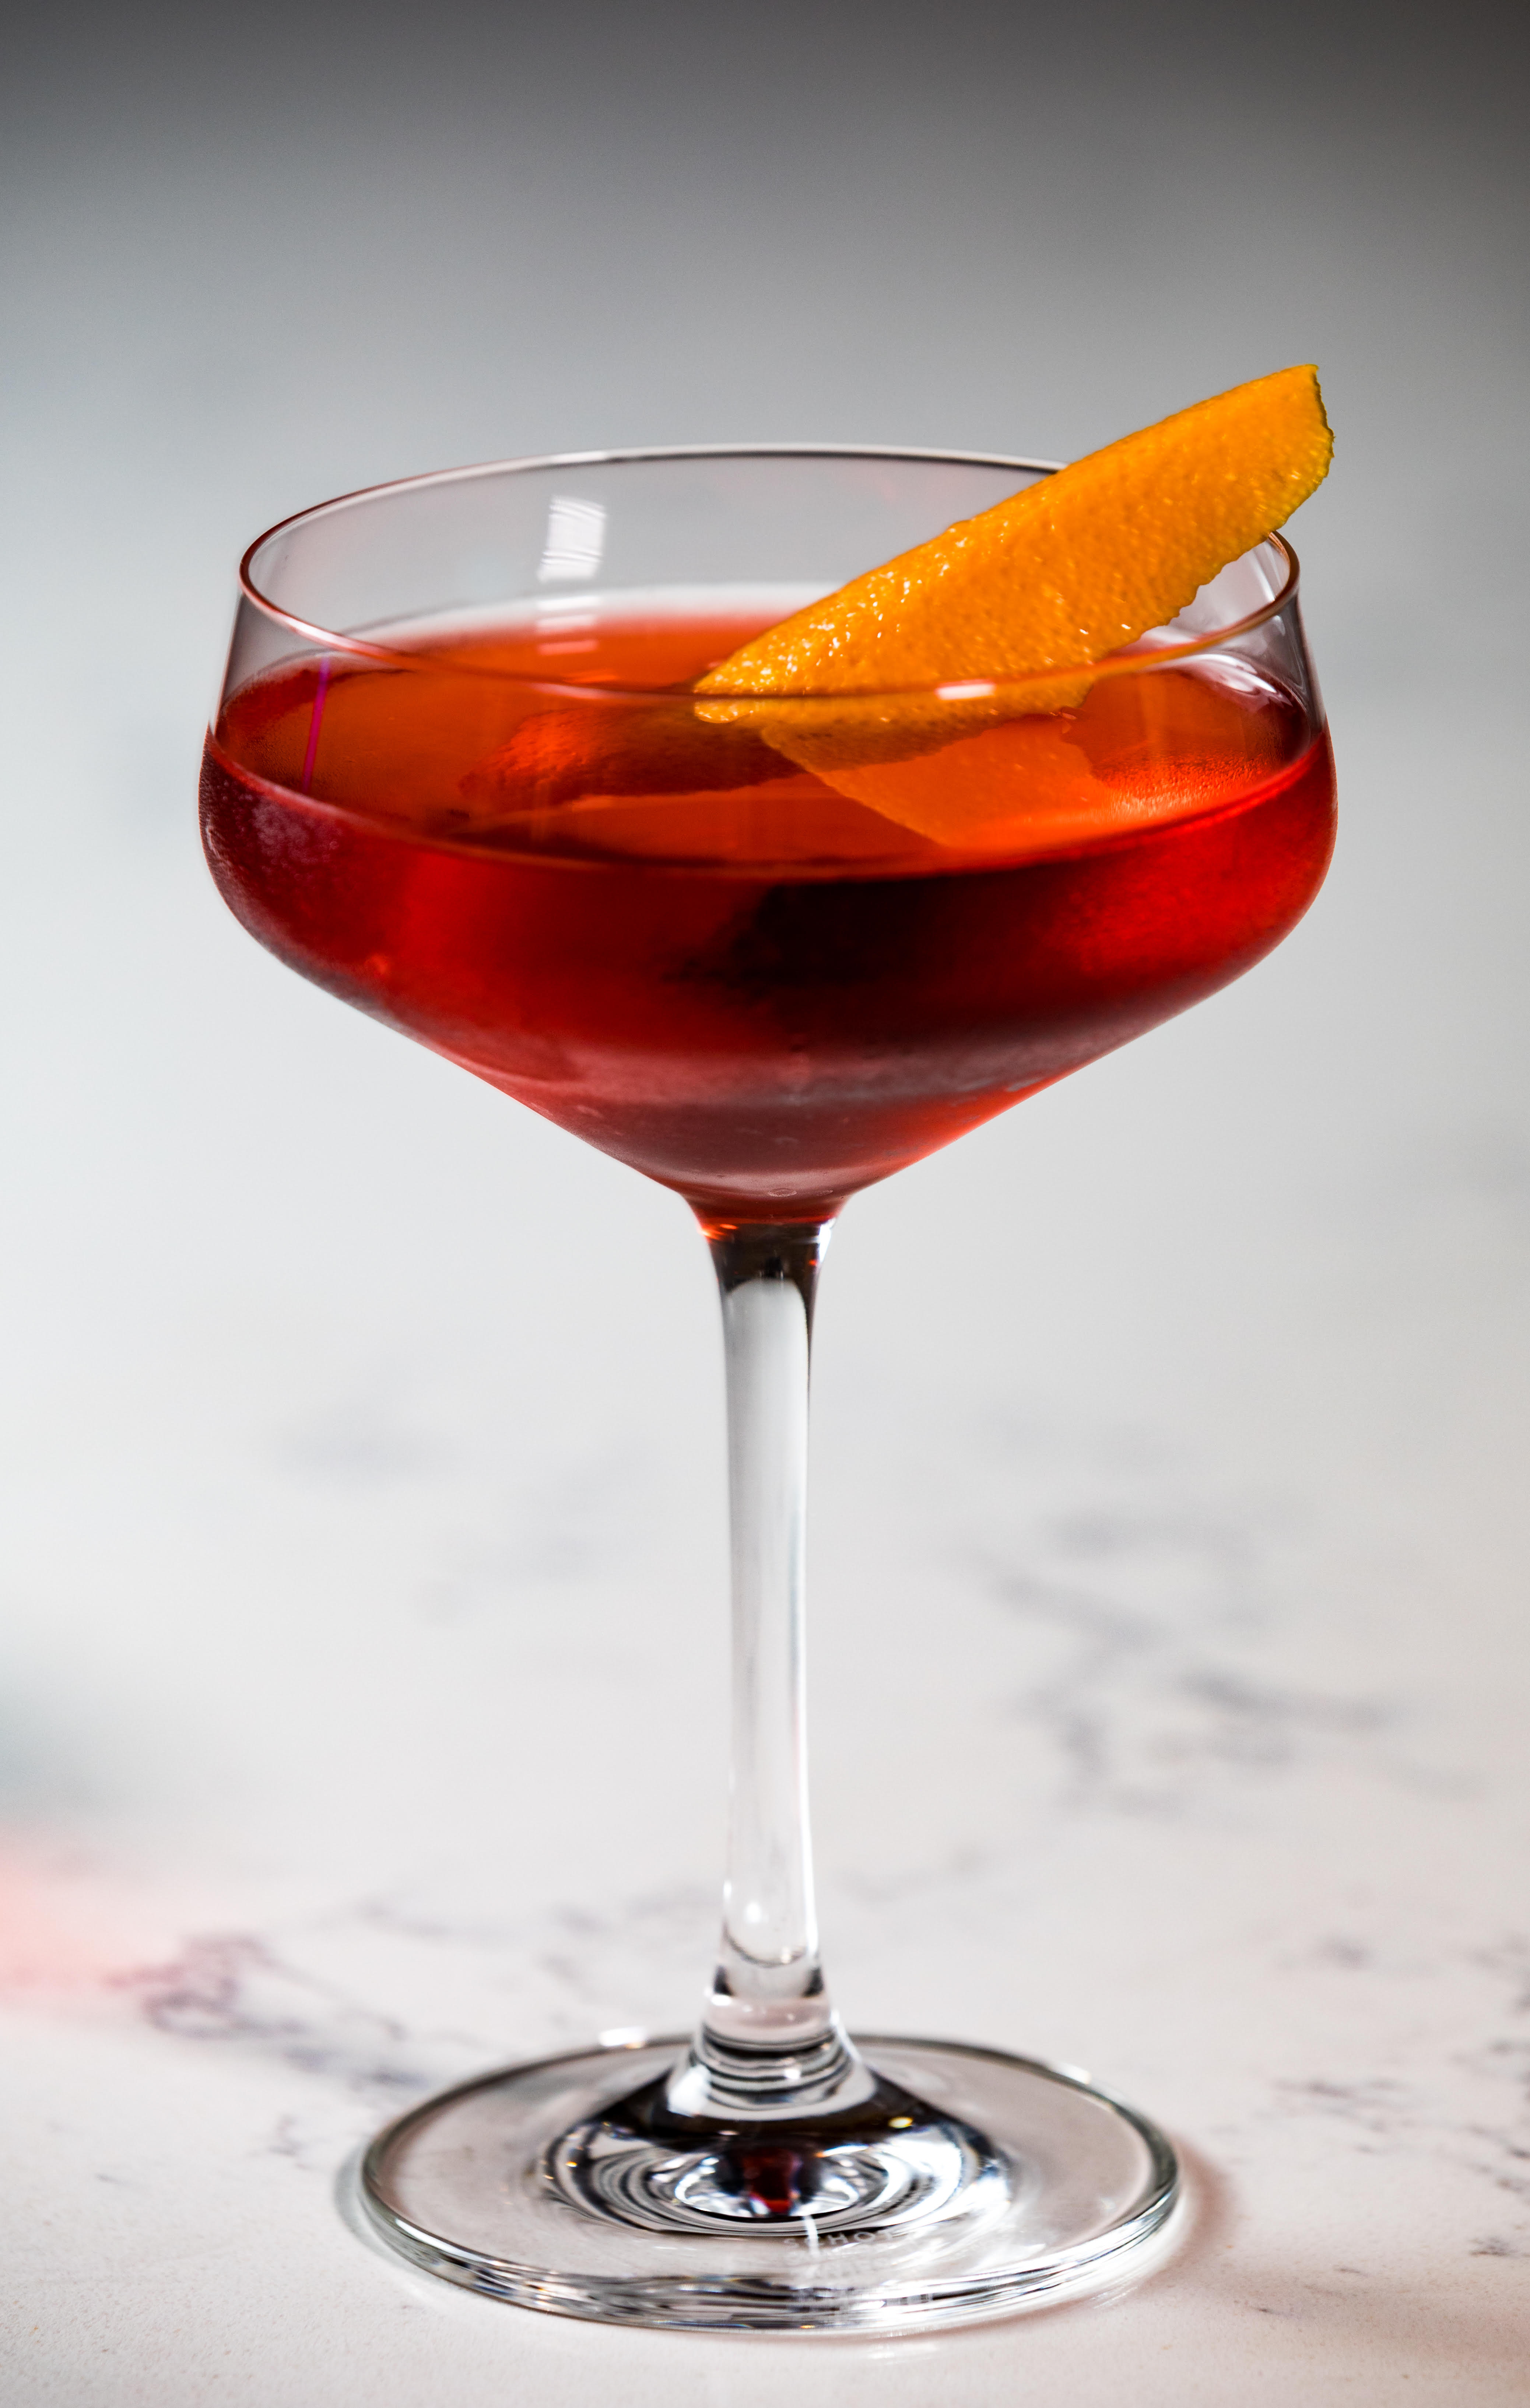 Albany Park's New Intimate Cocktail Den Opens Today